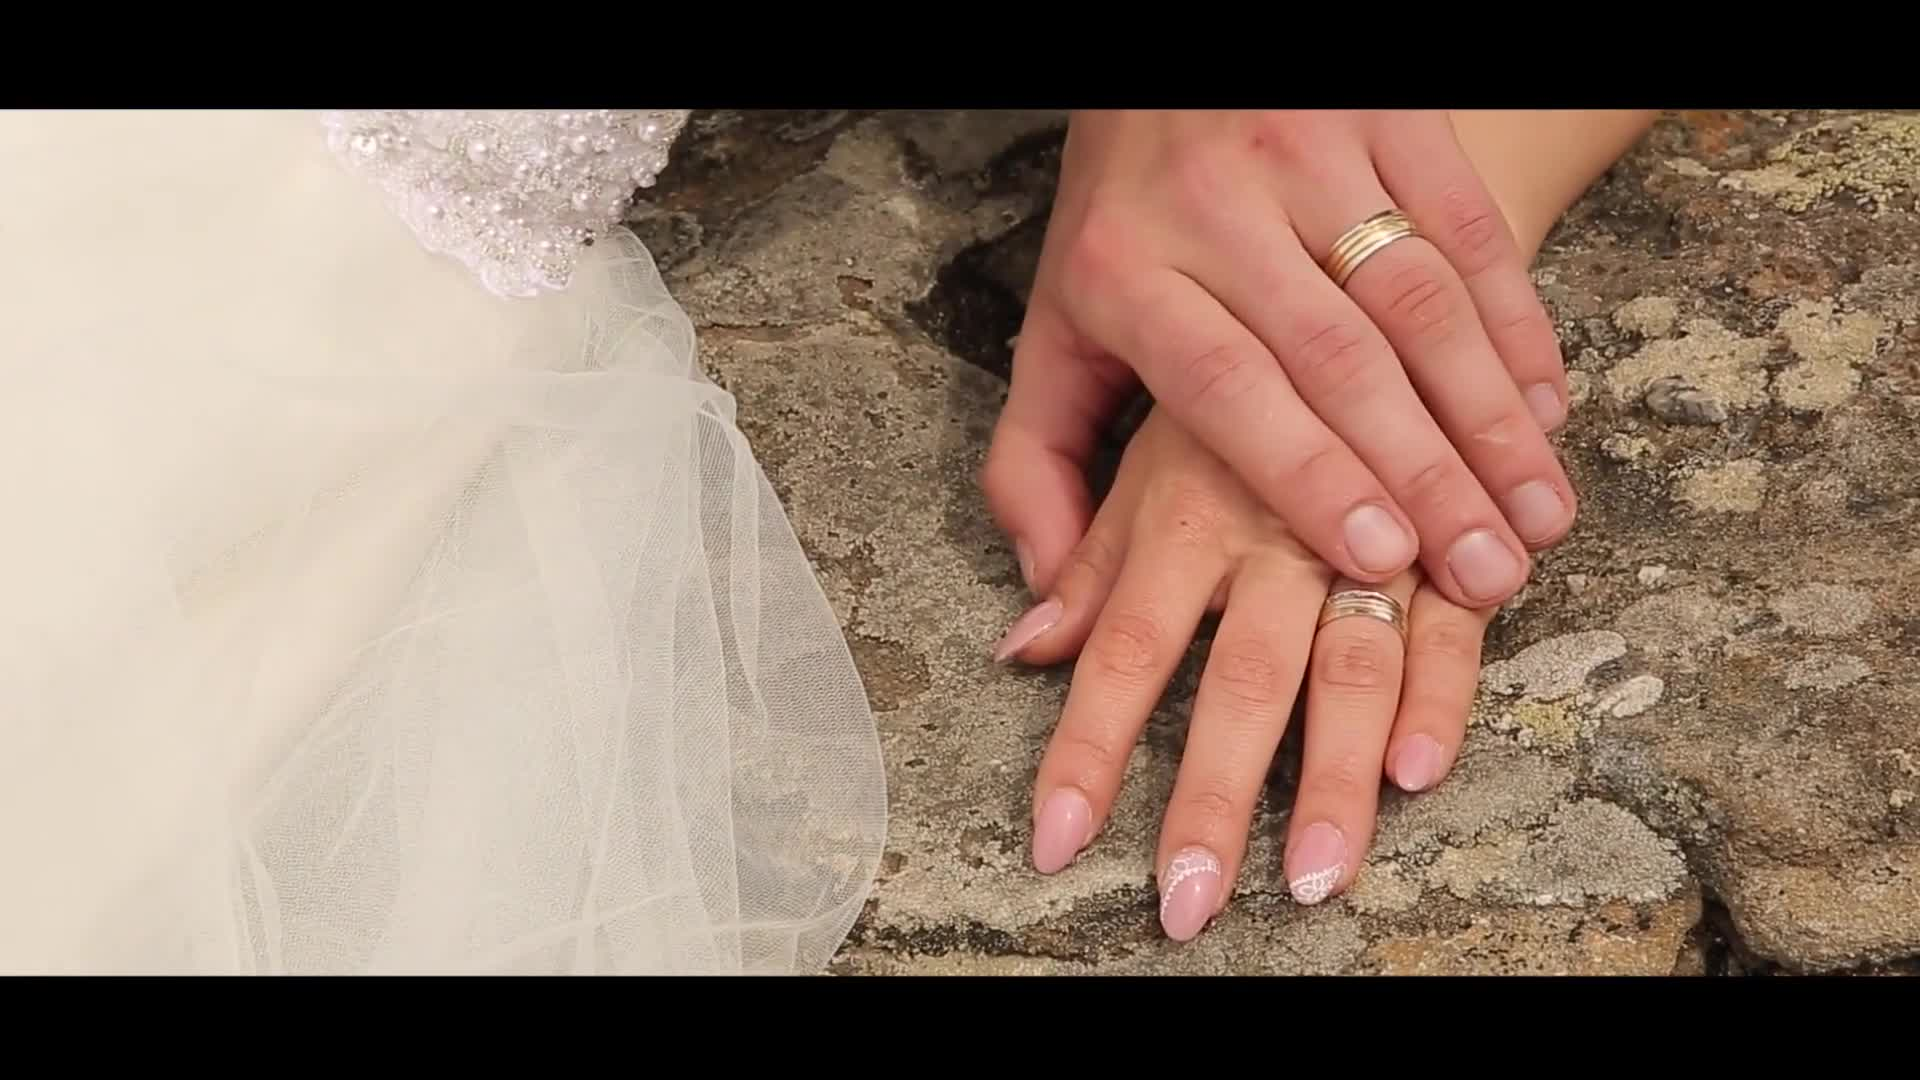 Hands wedding bride touching wedding ring